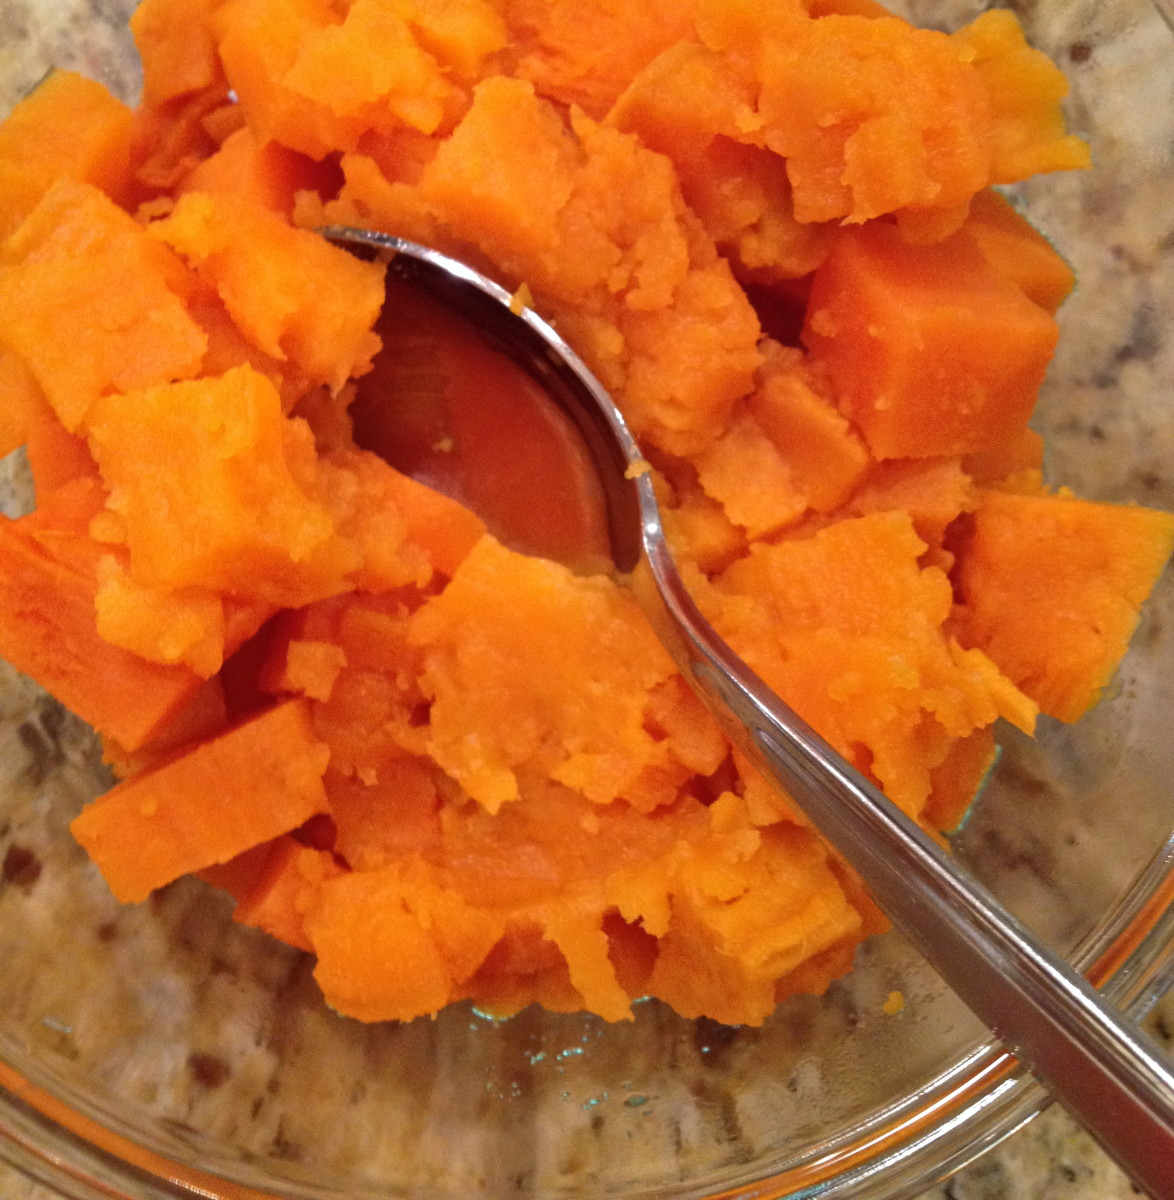 In a separate bowl, slightly mash about two cups of cooked sweet potato.